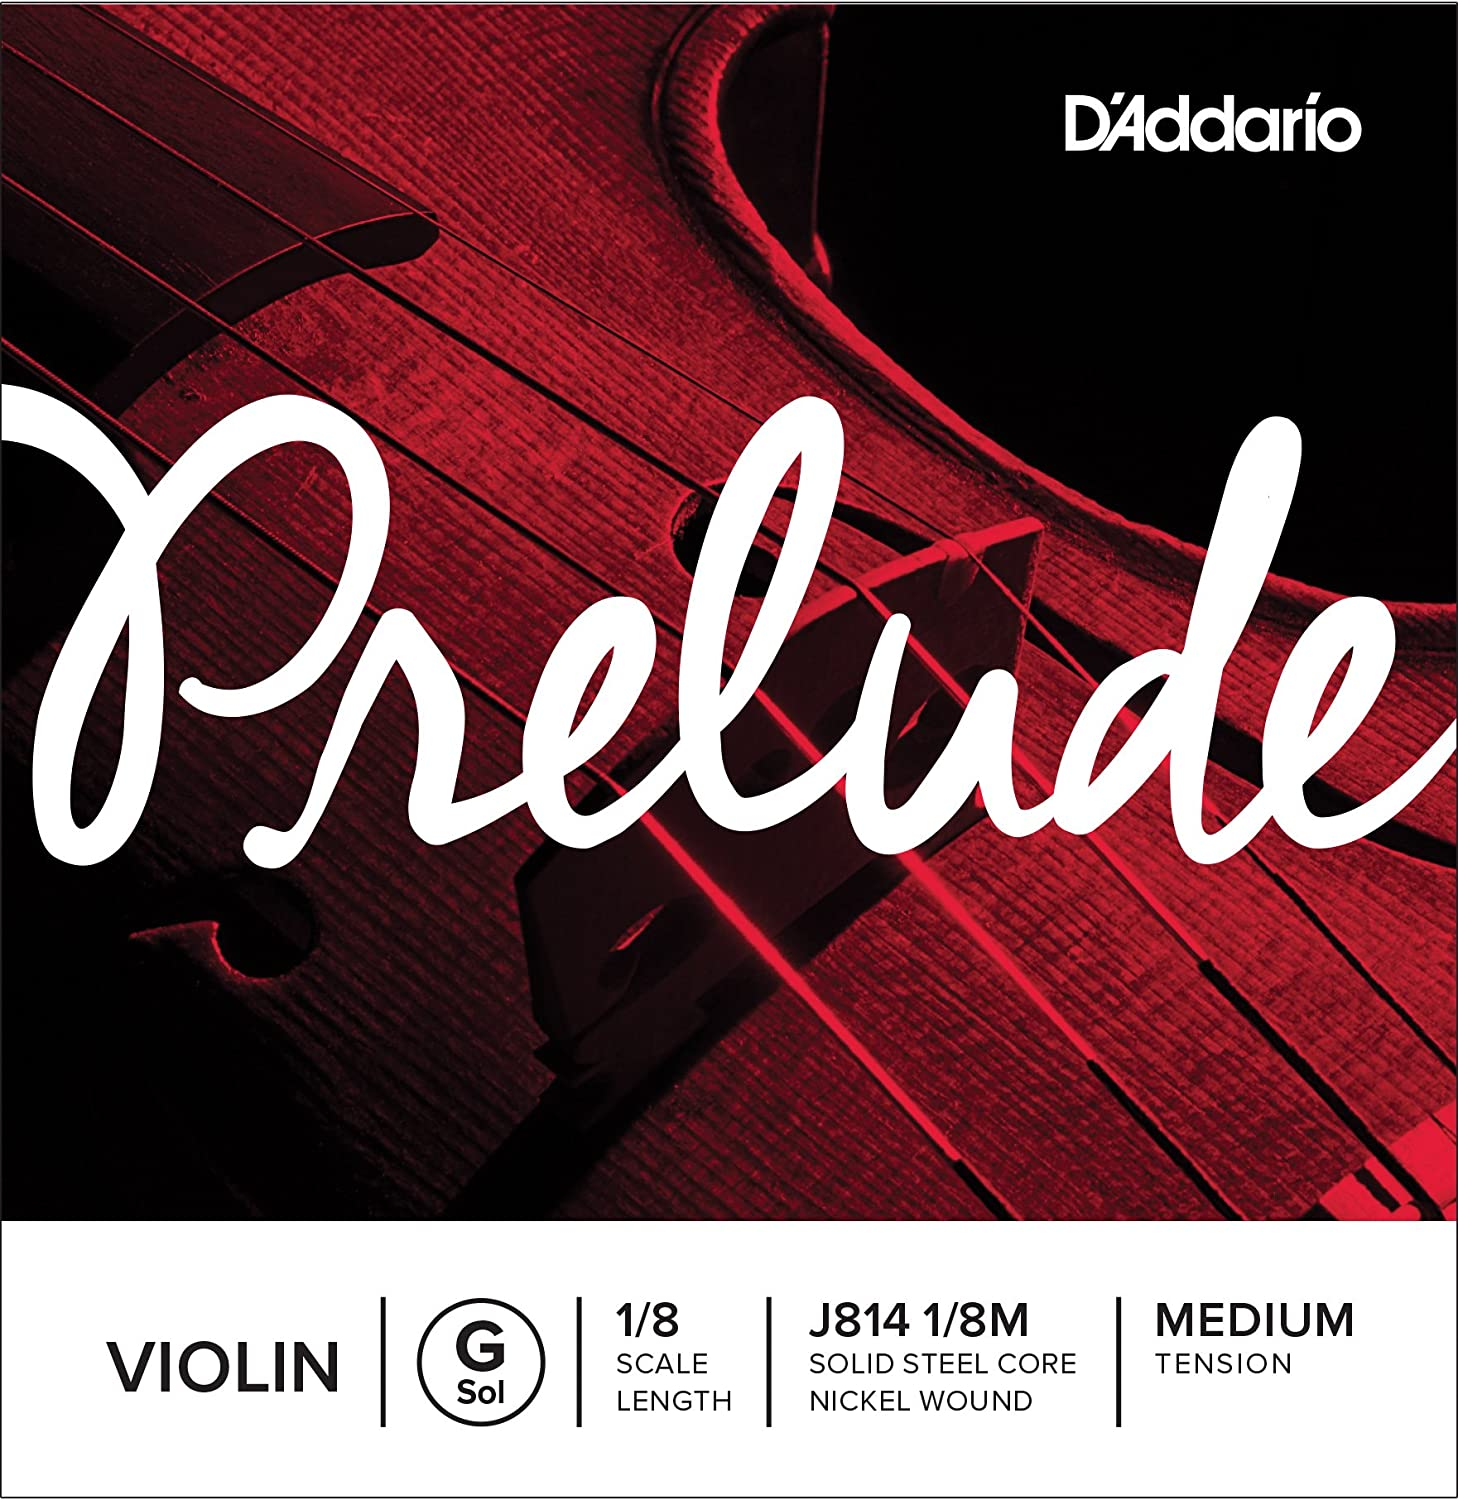 D'Addario Prelude Violin Single G String, 4/4 Scale, Heavy Tension D' Addario J814 4/4H